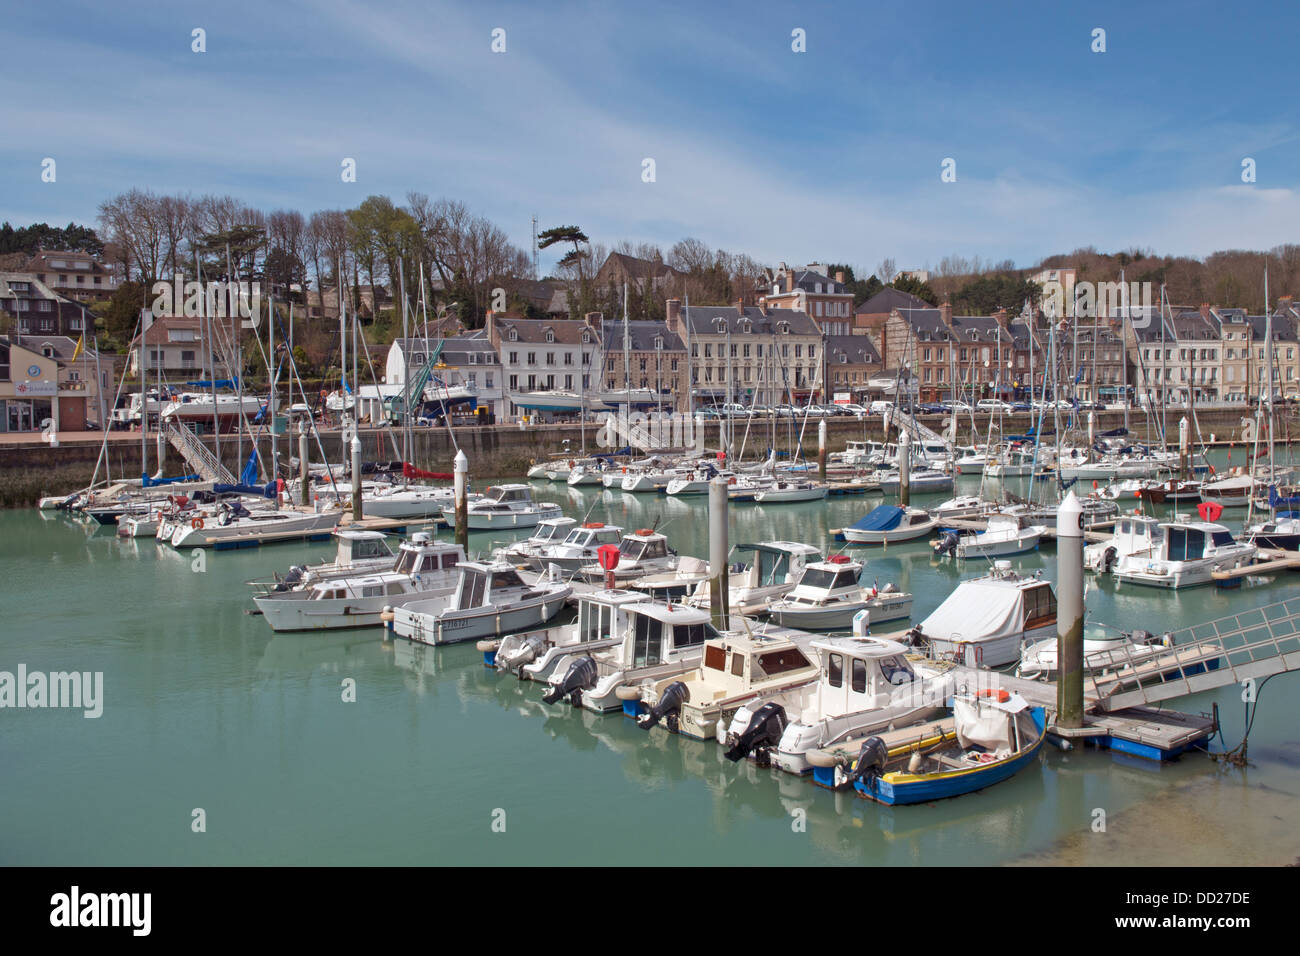 Harbour at St Valery en Caux in the Seine Maritime (76) departement of France - Stock Image